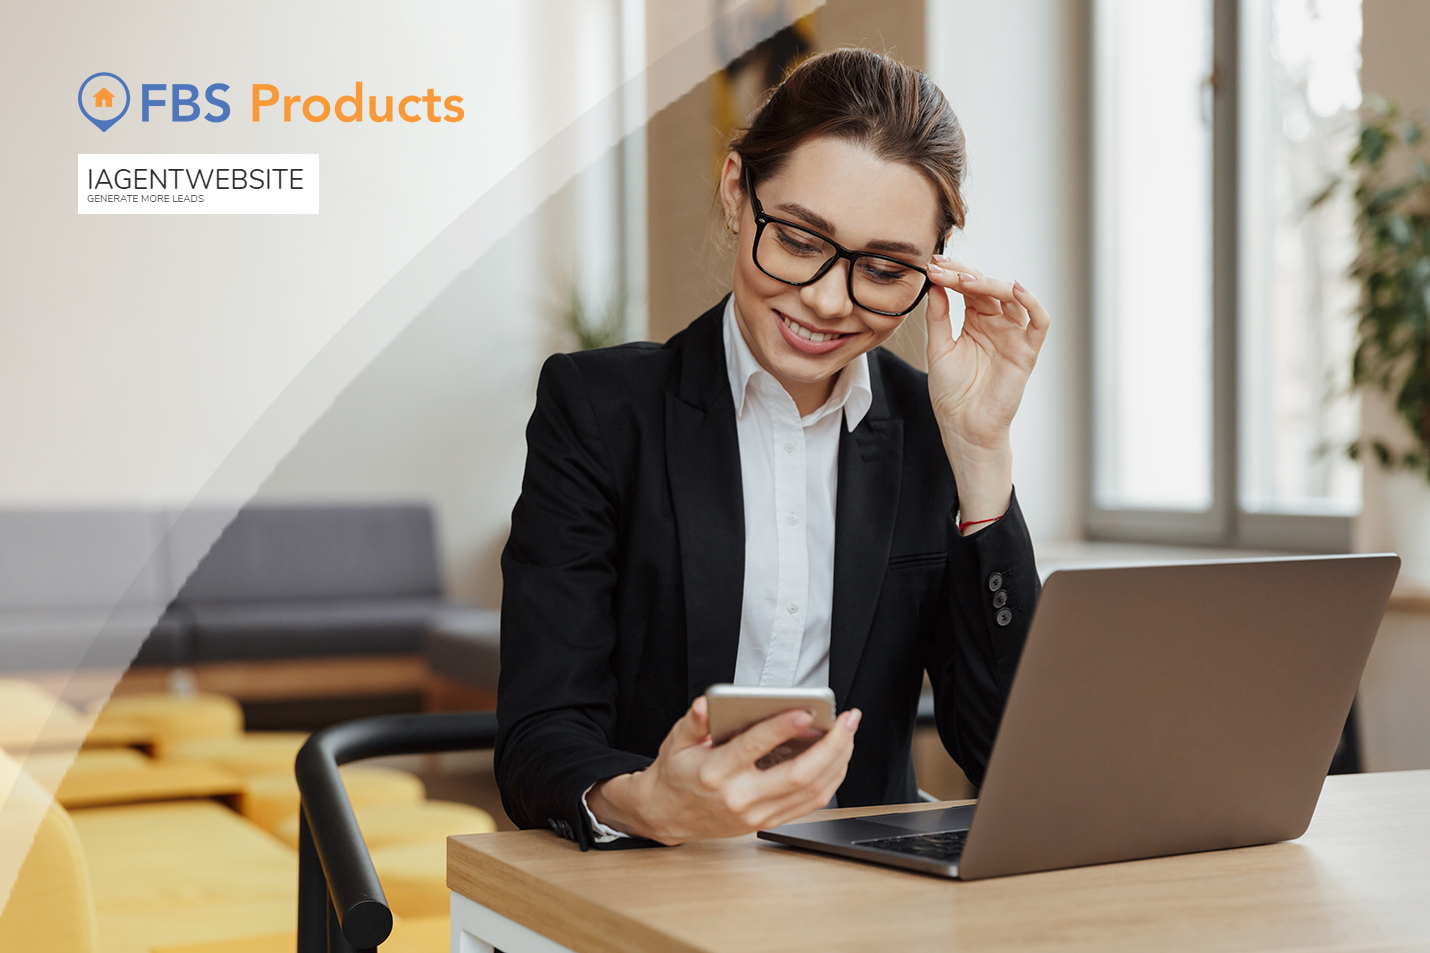 FBS Products provider of Flexmls-connected IDX solutions, partners with Cendance Systems, creator of iAgentWebsites and iMax CRM